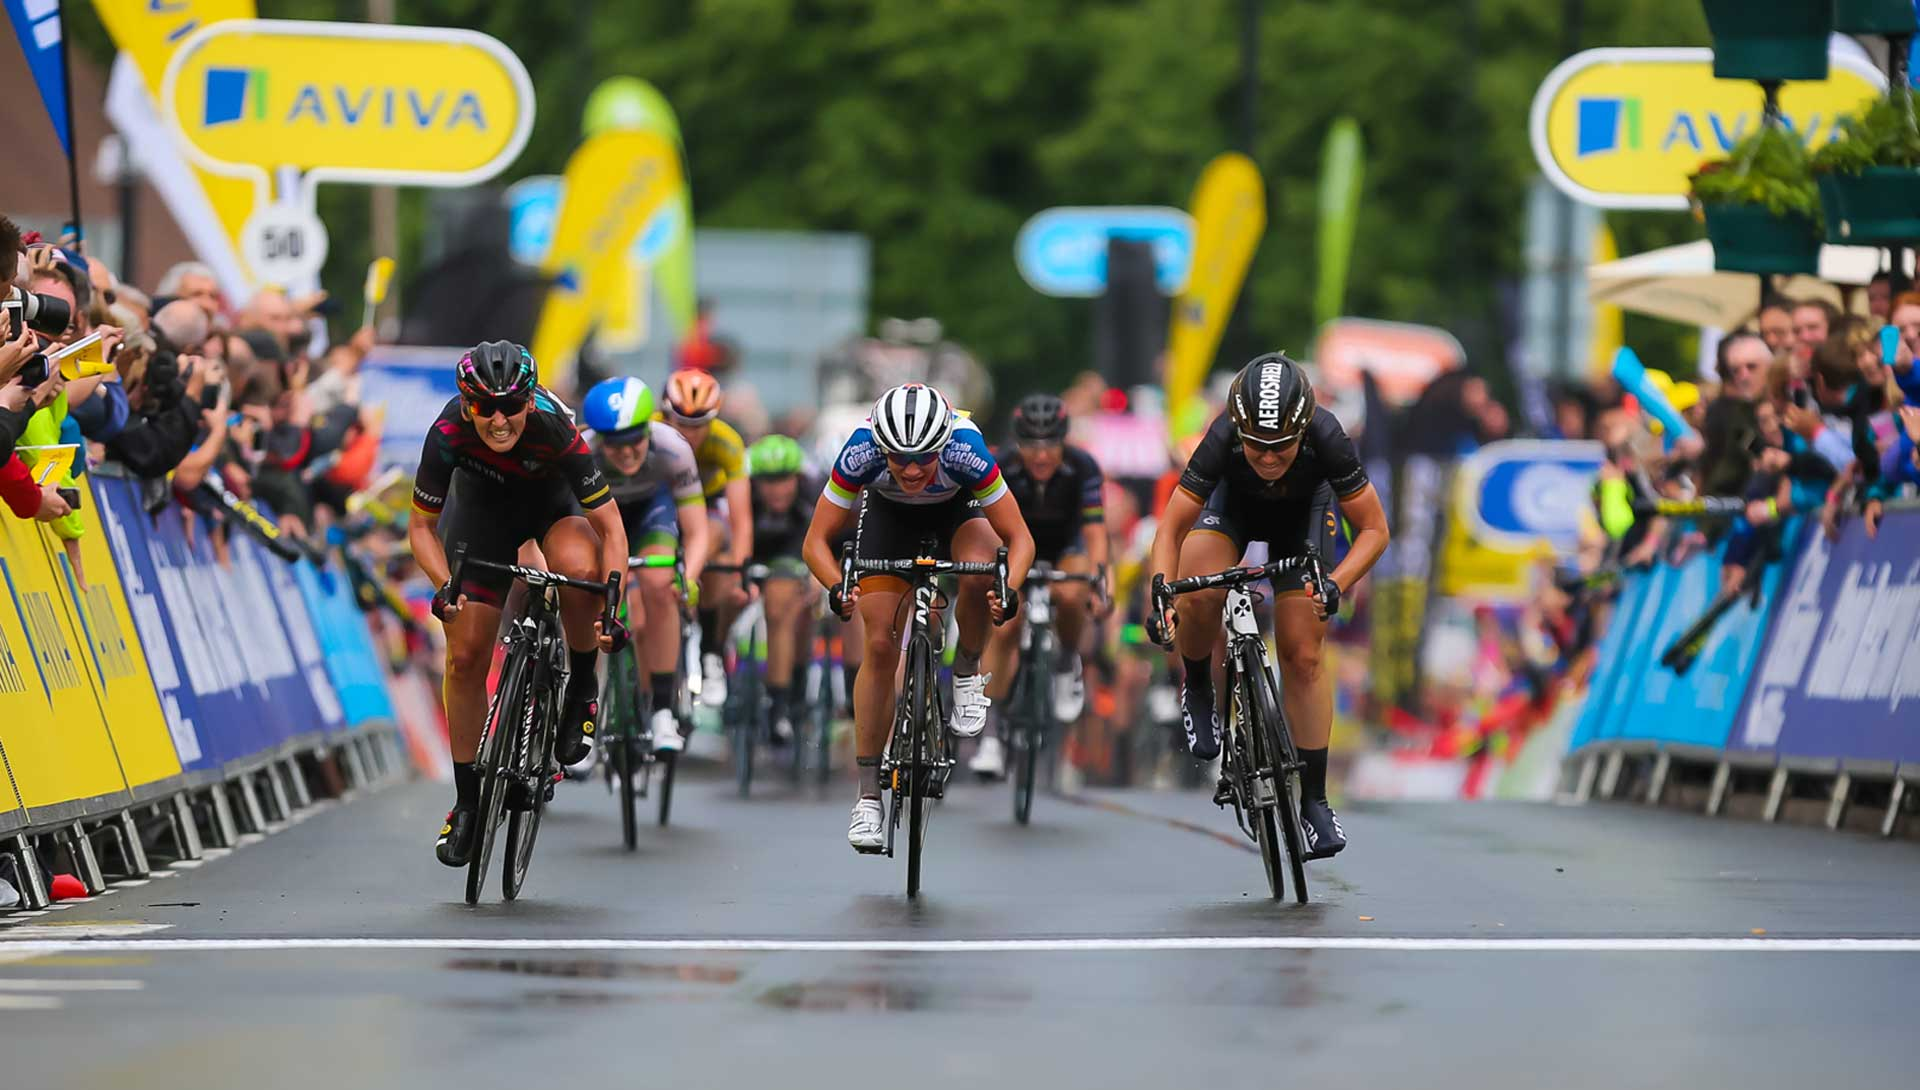 Marianne Vos takes the Aviva Yellow Jersey in Warwickshire stage